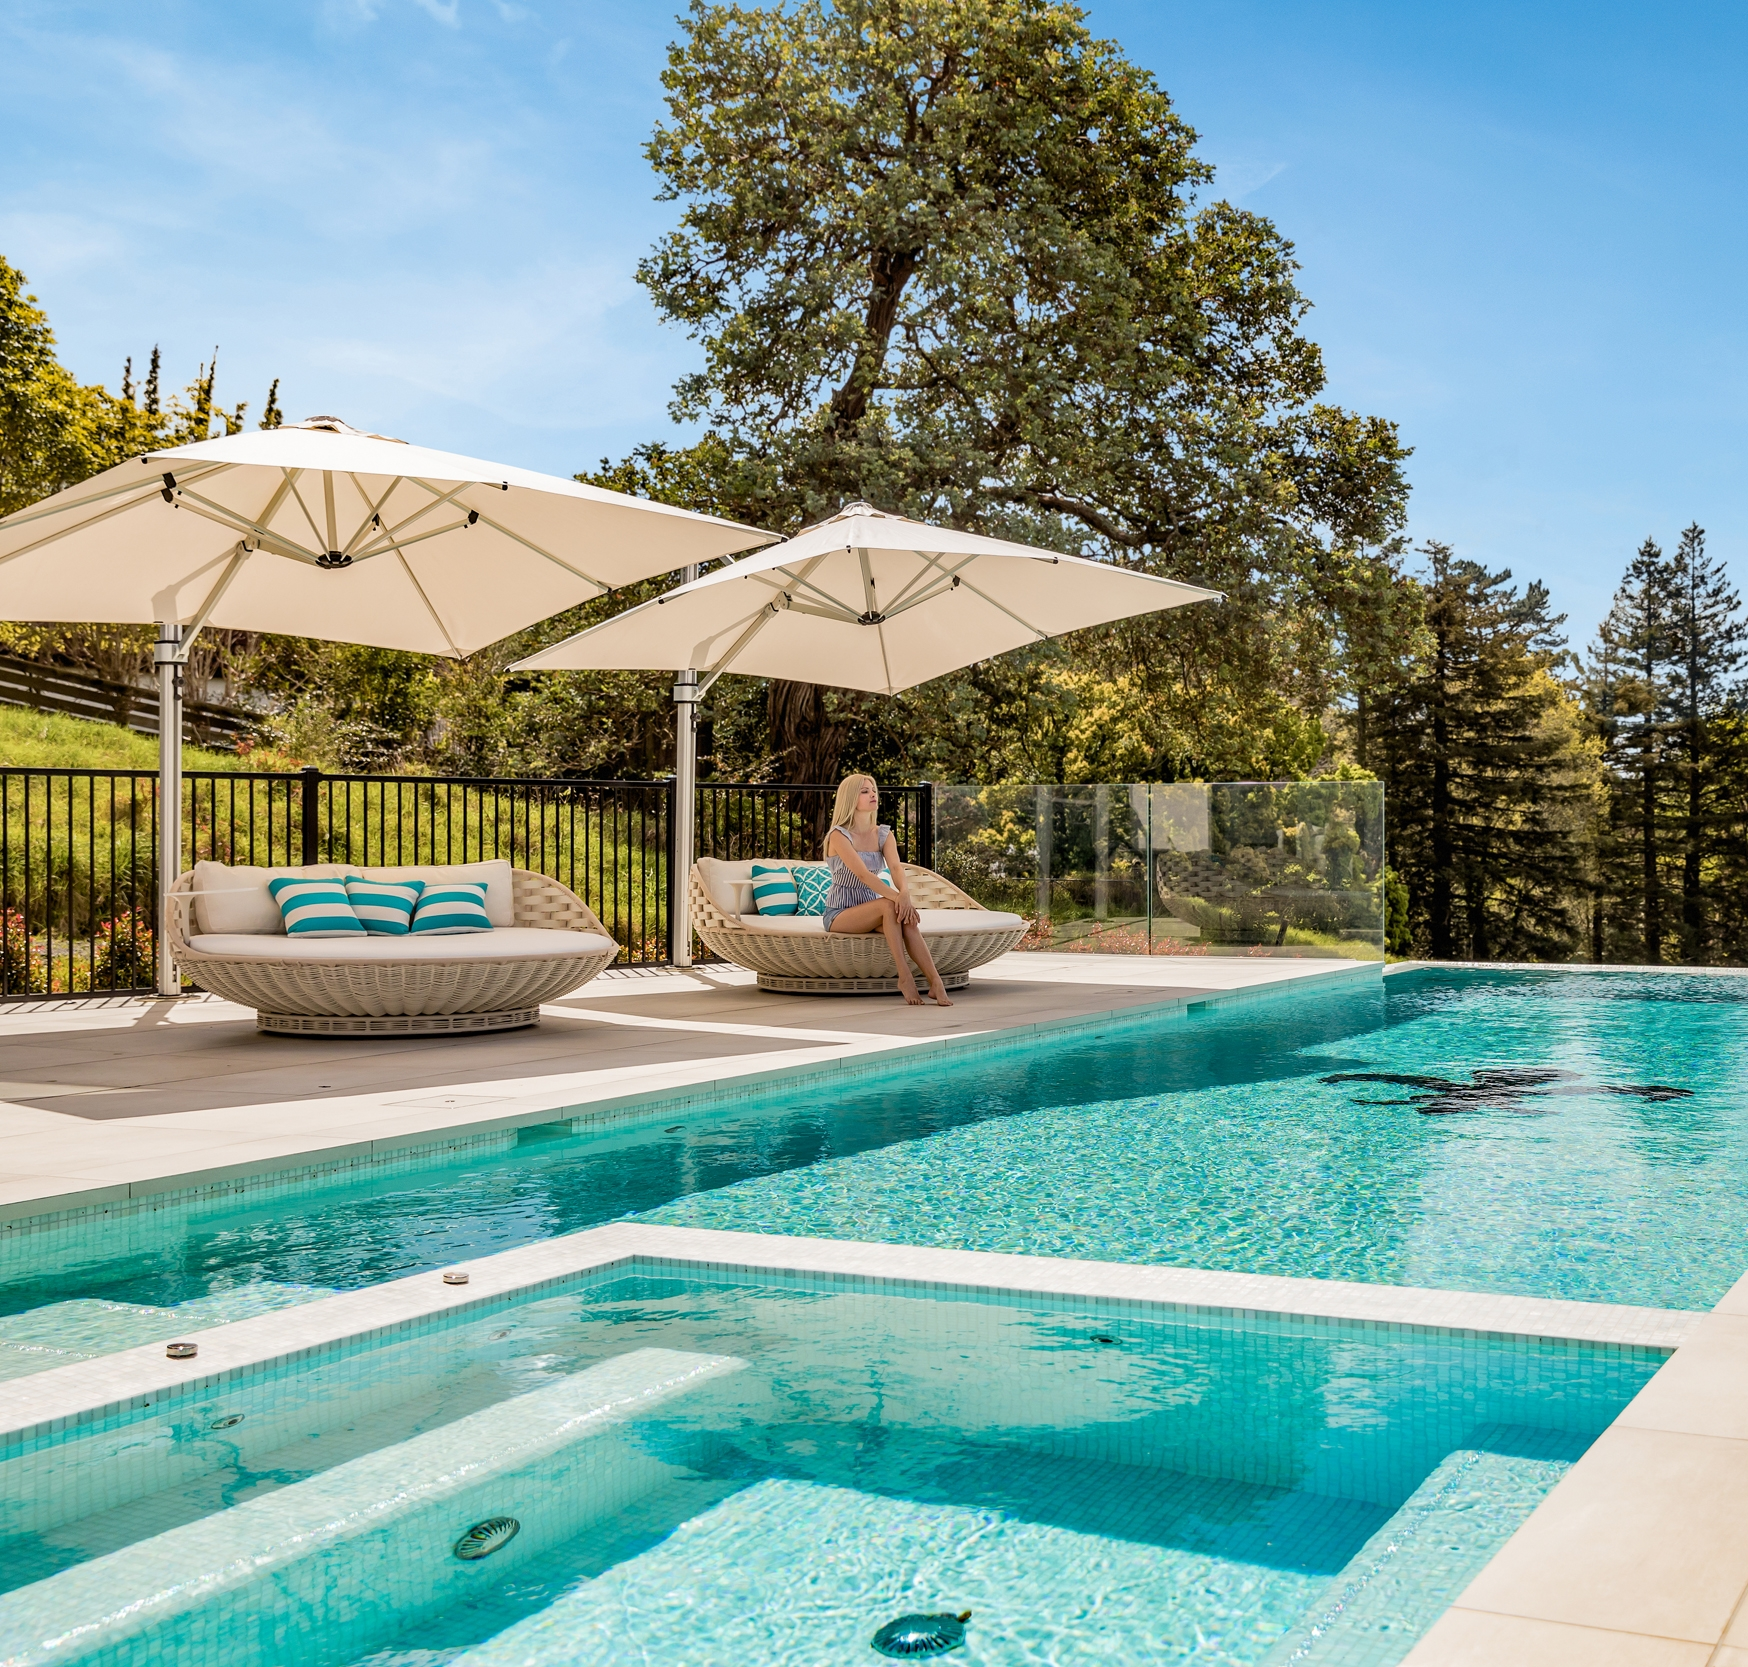 Riviera White Cantilever Umbrella By Pool